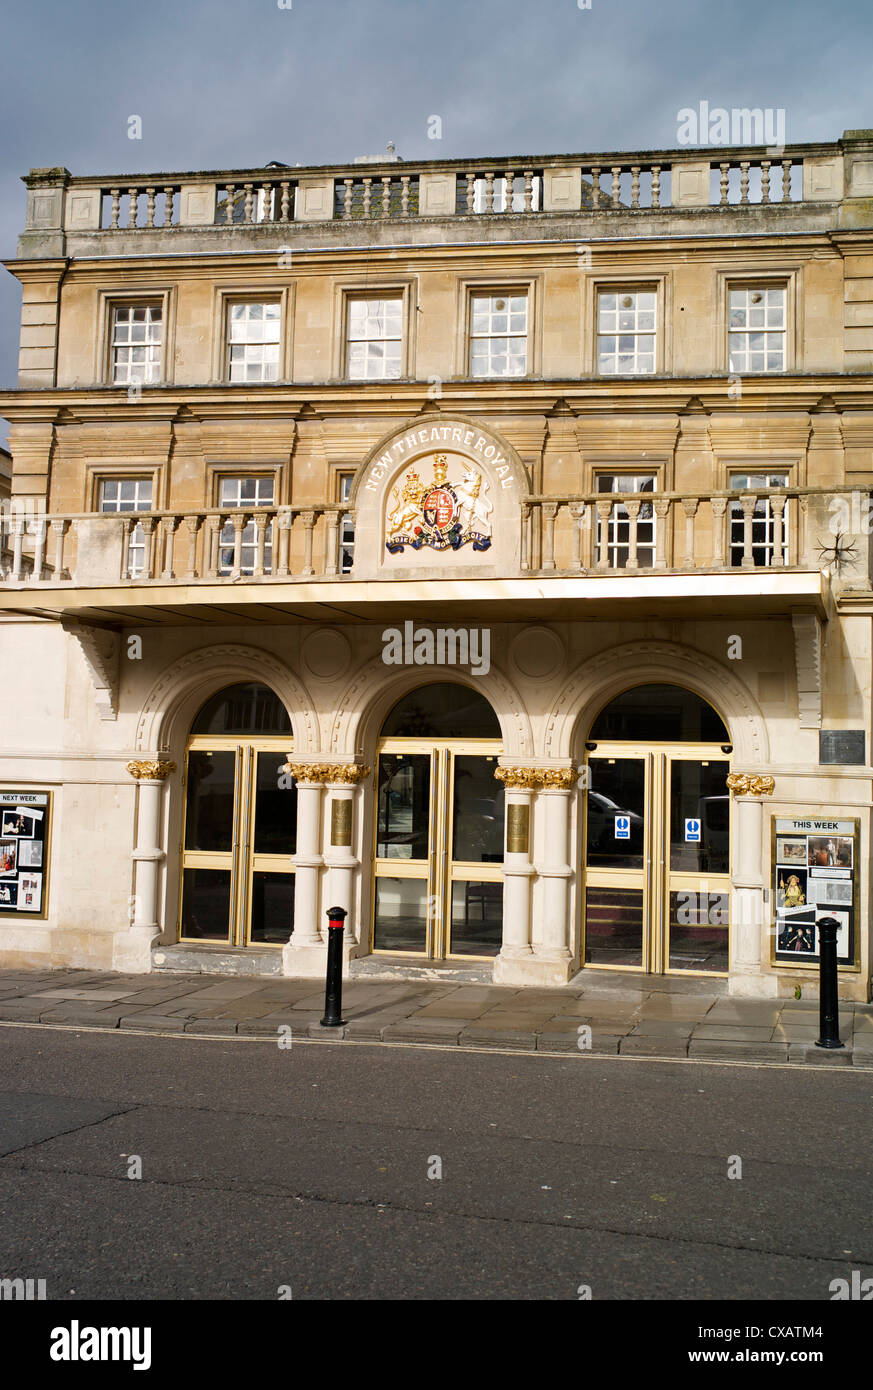 The Theatre Royal, Bath, Avon, England, United Kingdom, Europe - Stock Image